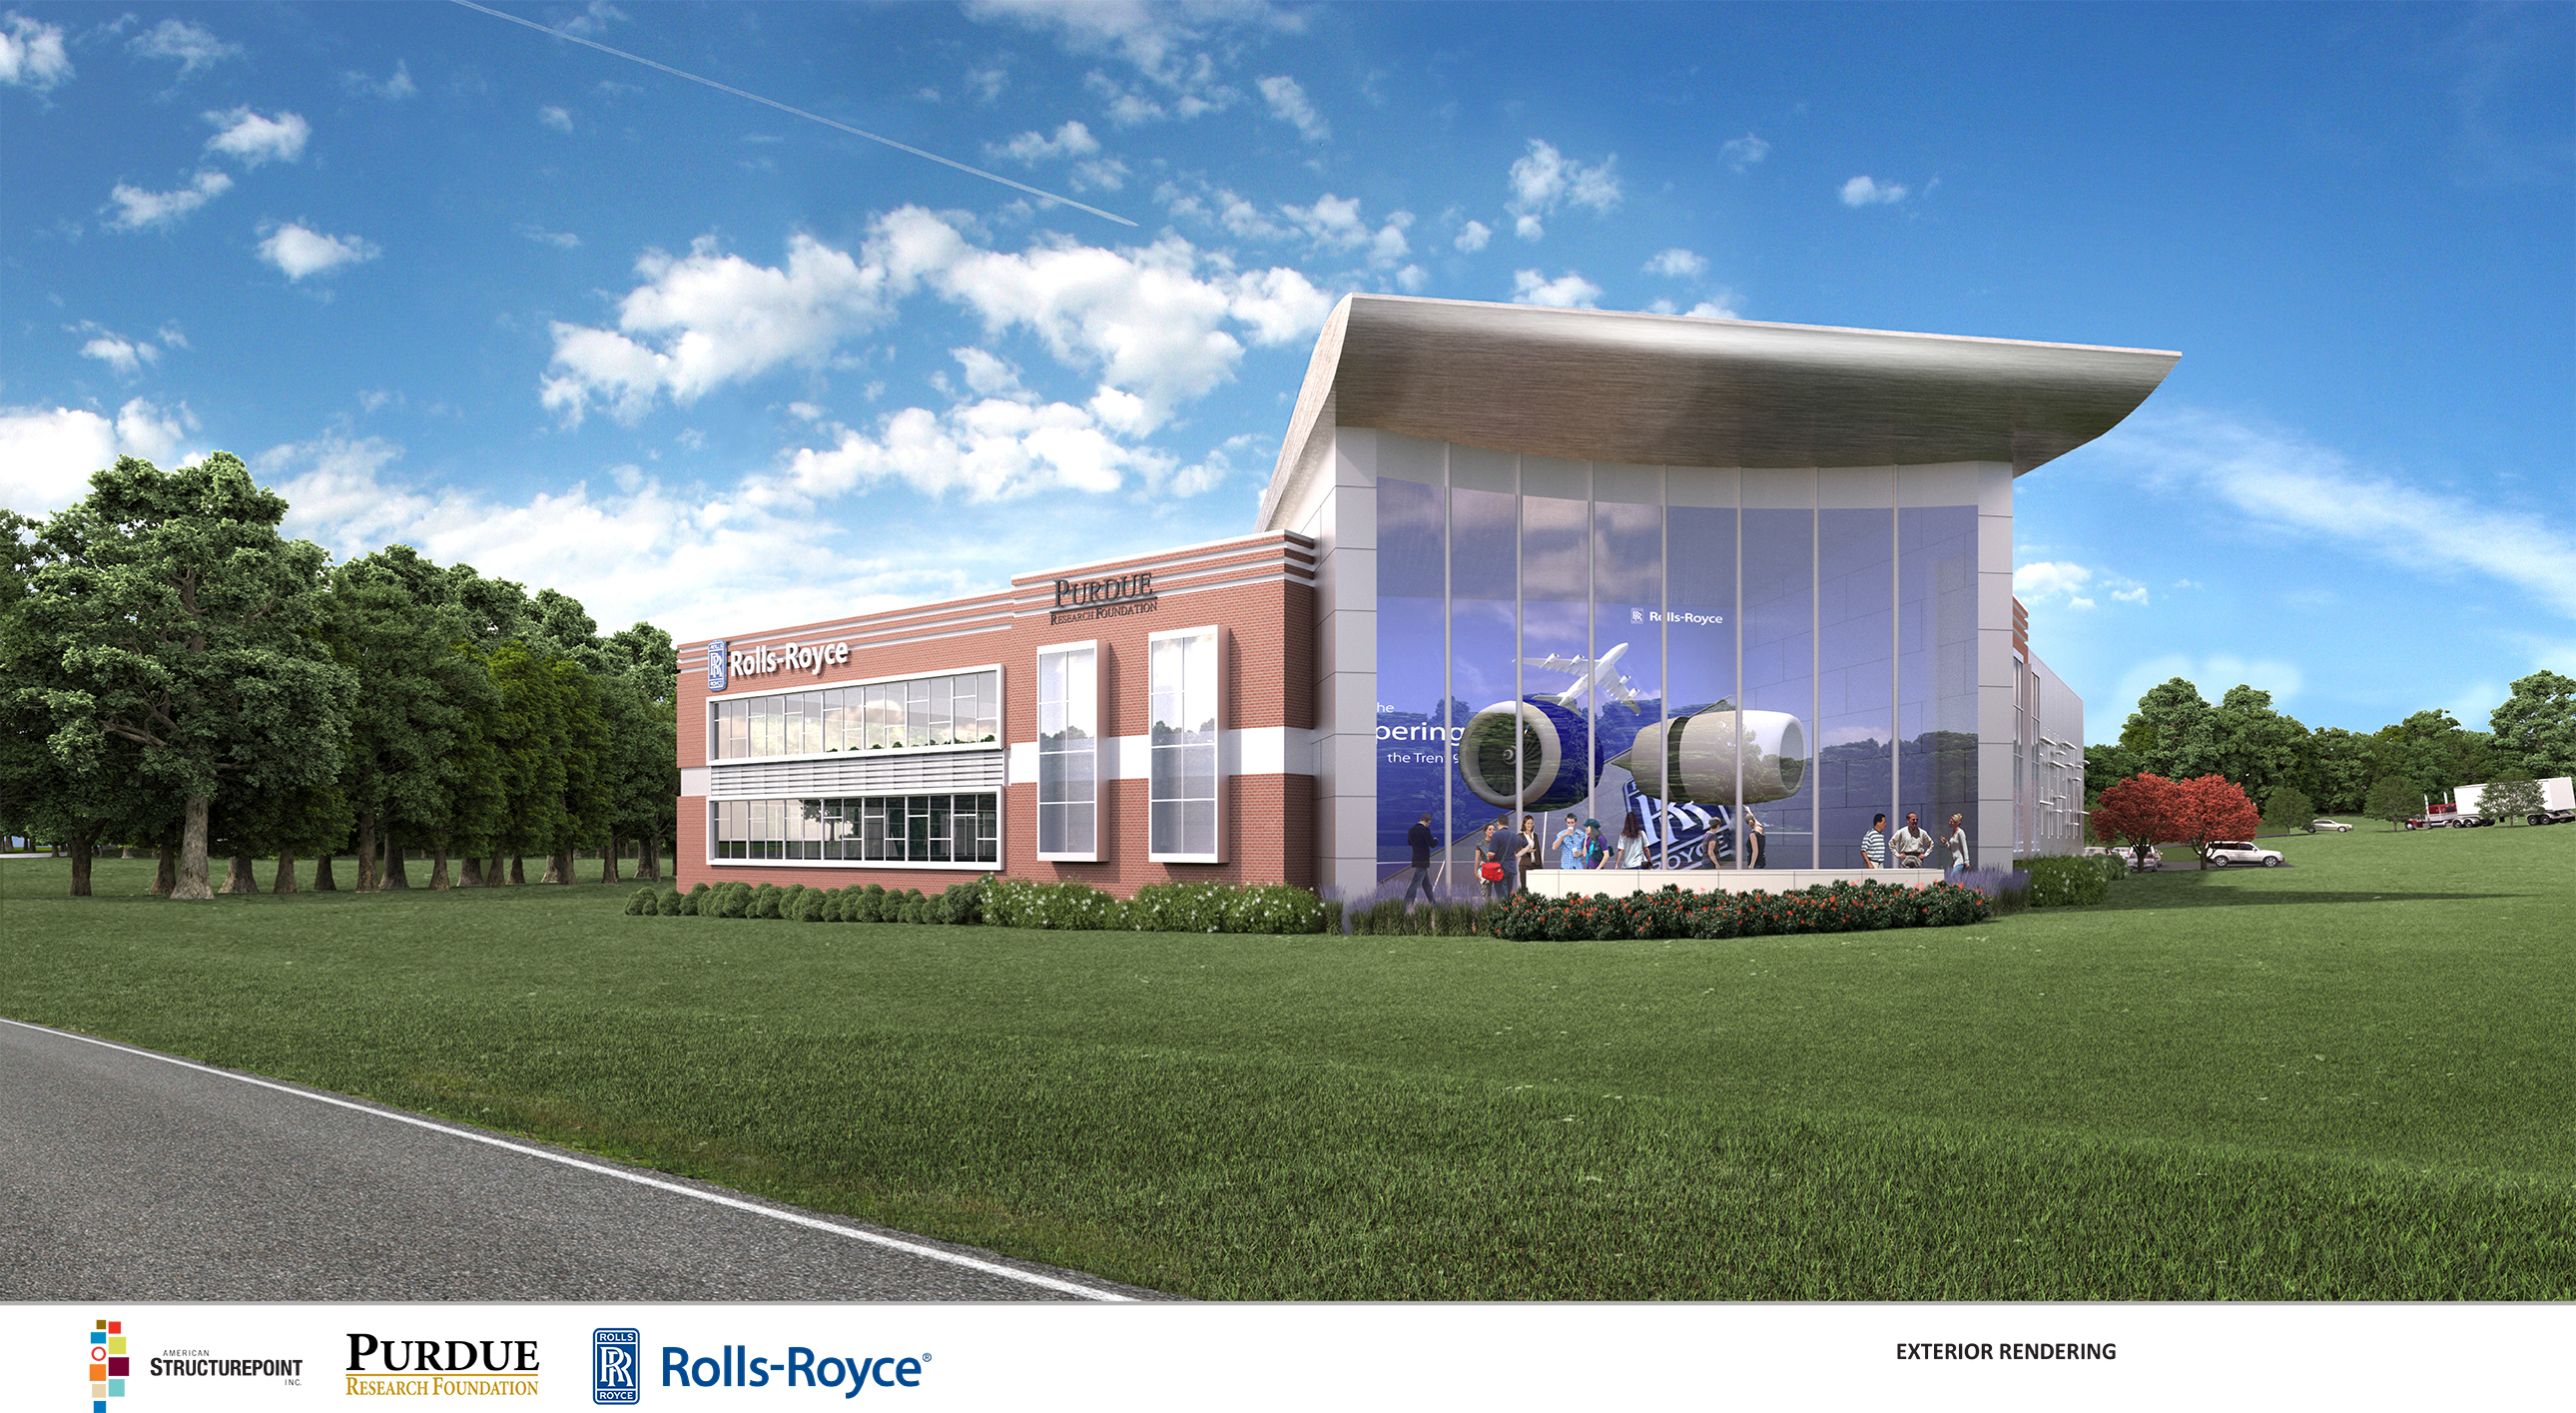 rolls-royce testing facility first tenant at aerospace district of